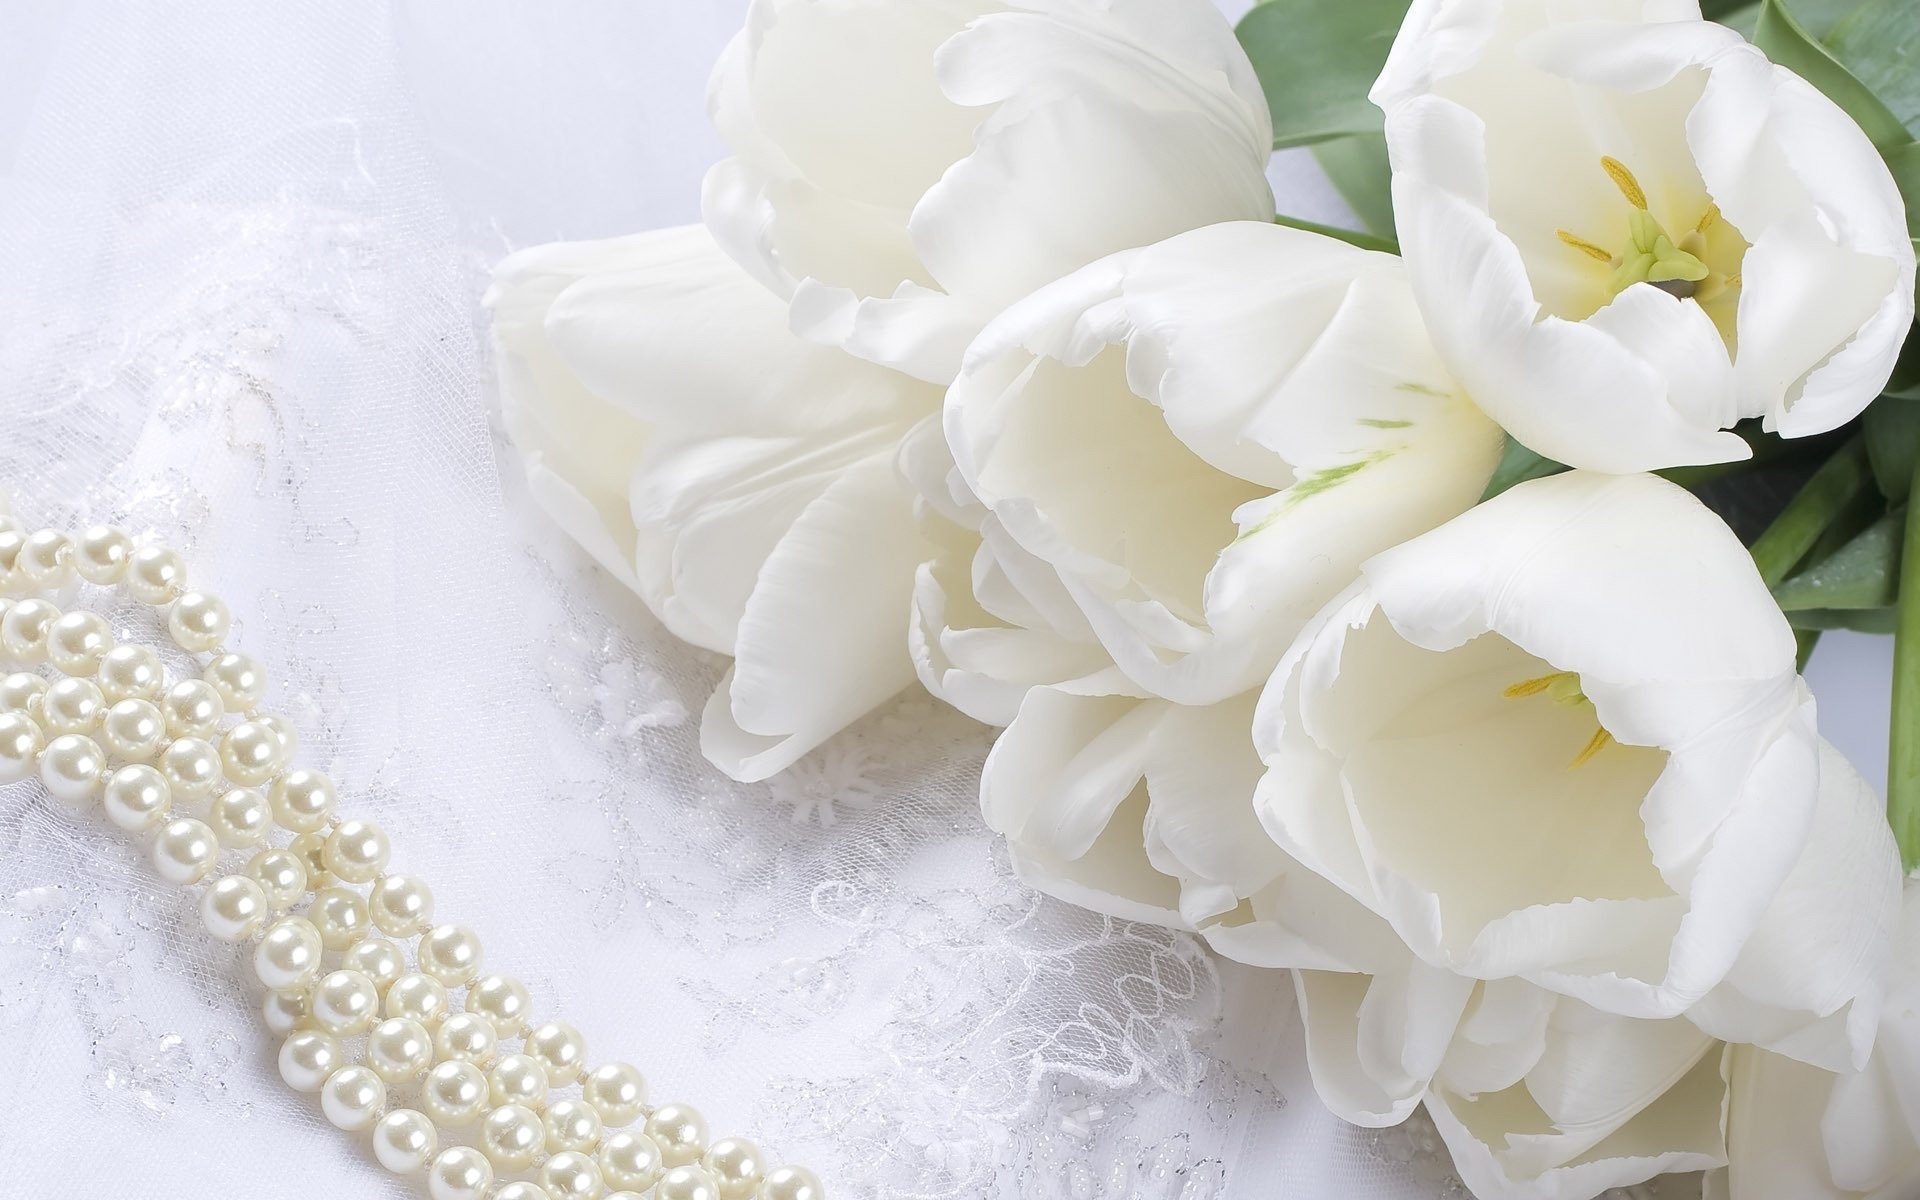 Res: 1920x1200, flower tulips white lace beads pearl bouquet